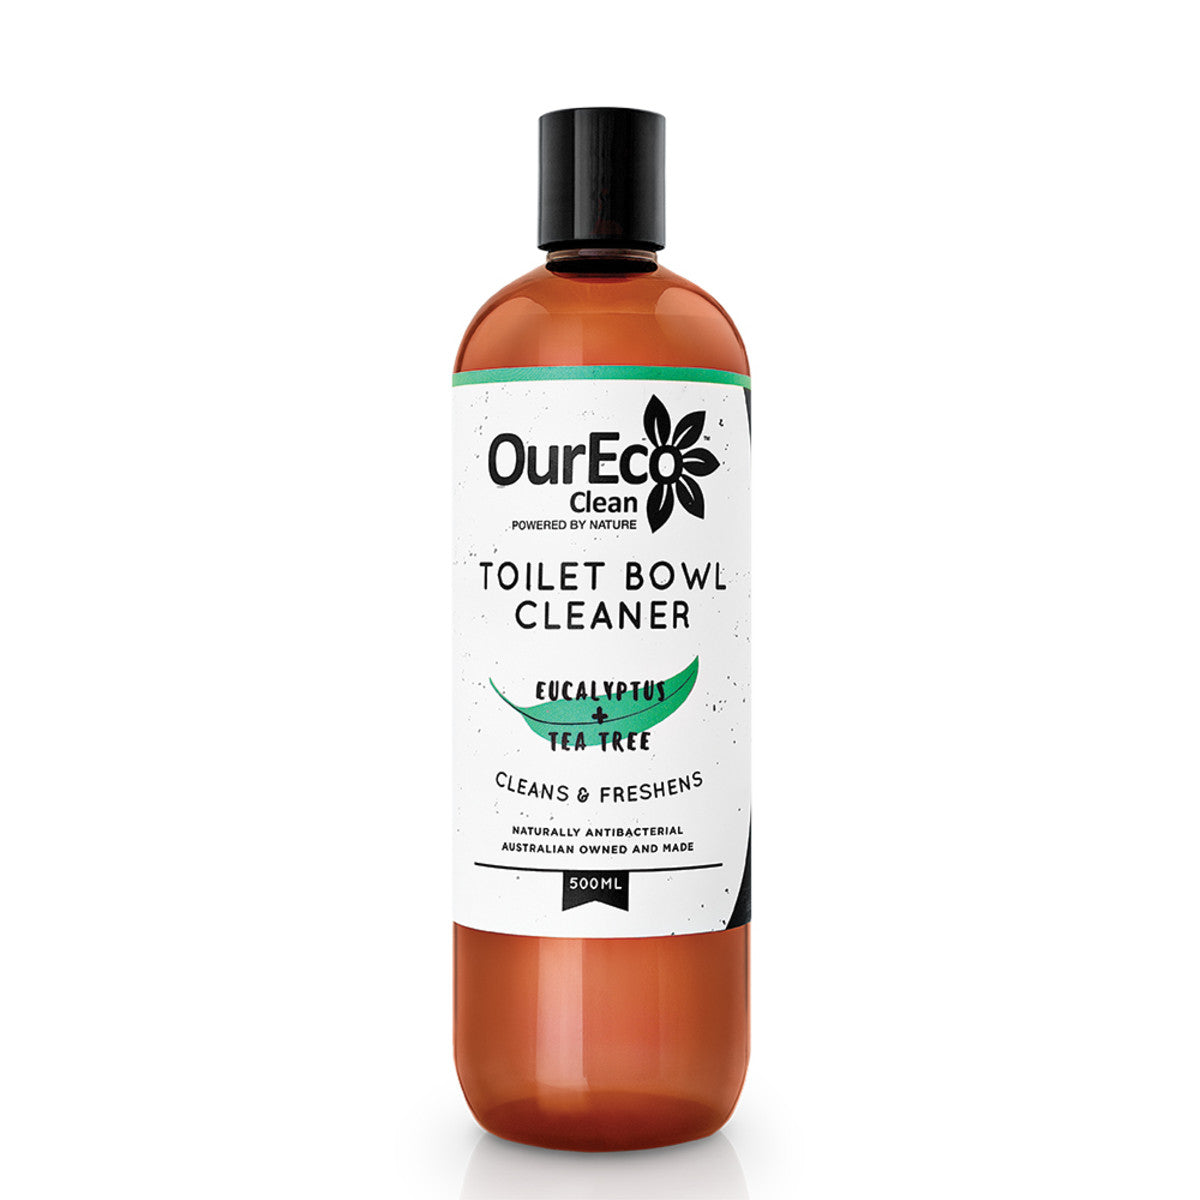 OurEco Clean Toilet Bowl Cleaner - The Conscious Spender